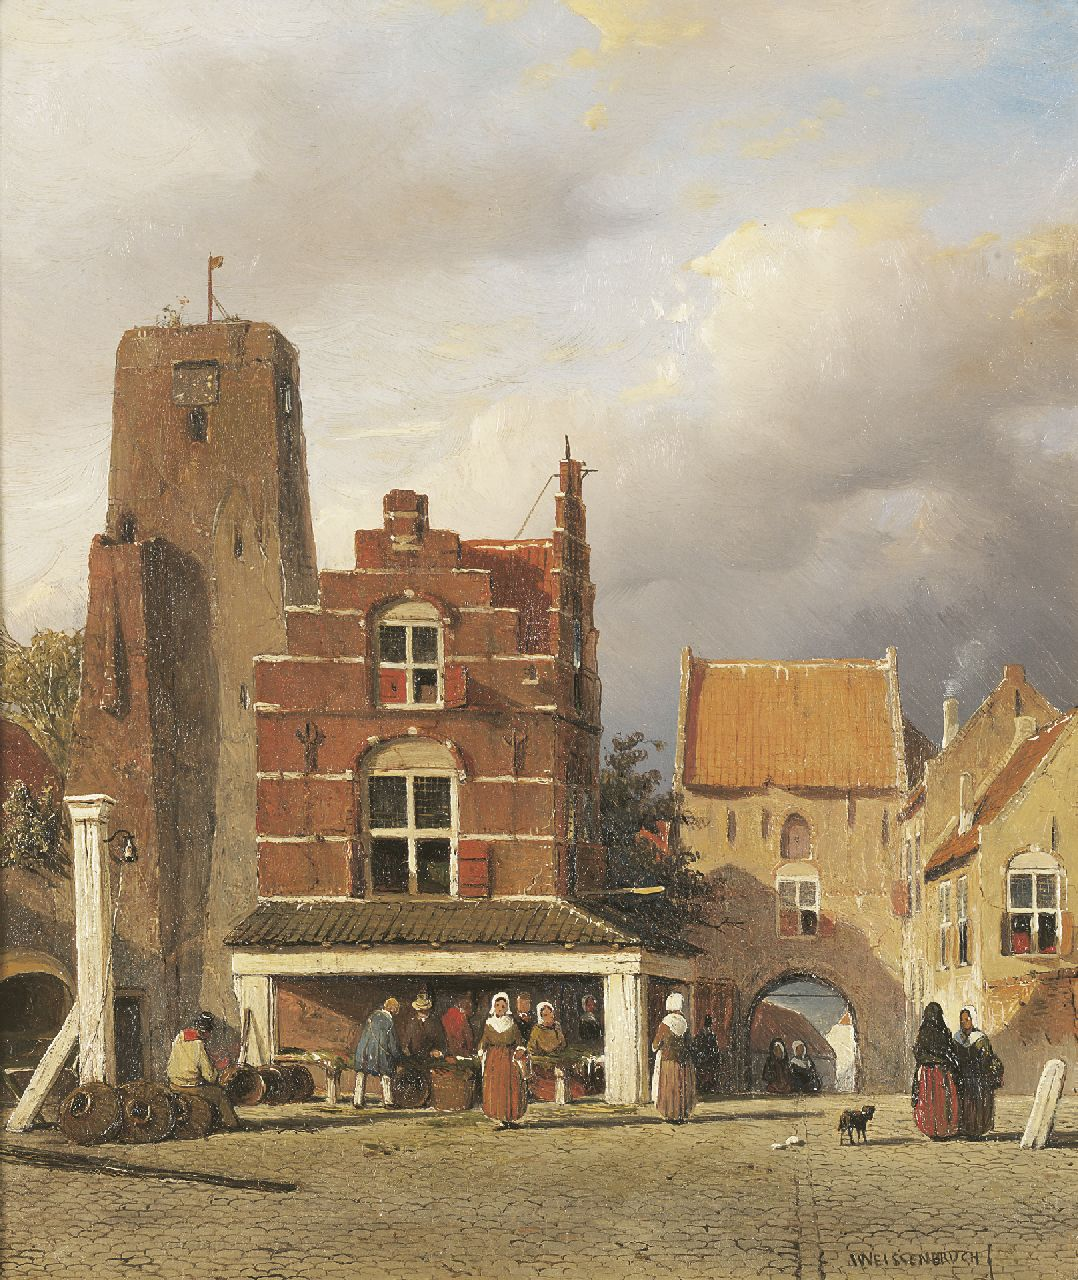 Weissenbruch J.  | Johannes 'Jan' Weissenbruch, Figures on the fishmarket of Woudrichem, with the Hoftoren, oil on panel 30.9 x 25.7 cm, signed l.r.